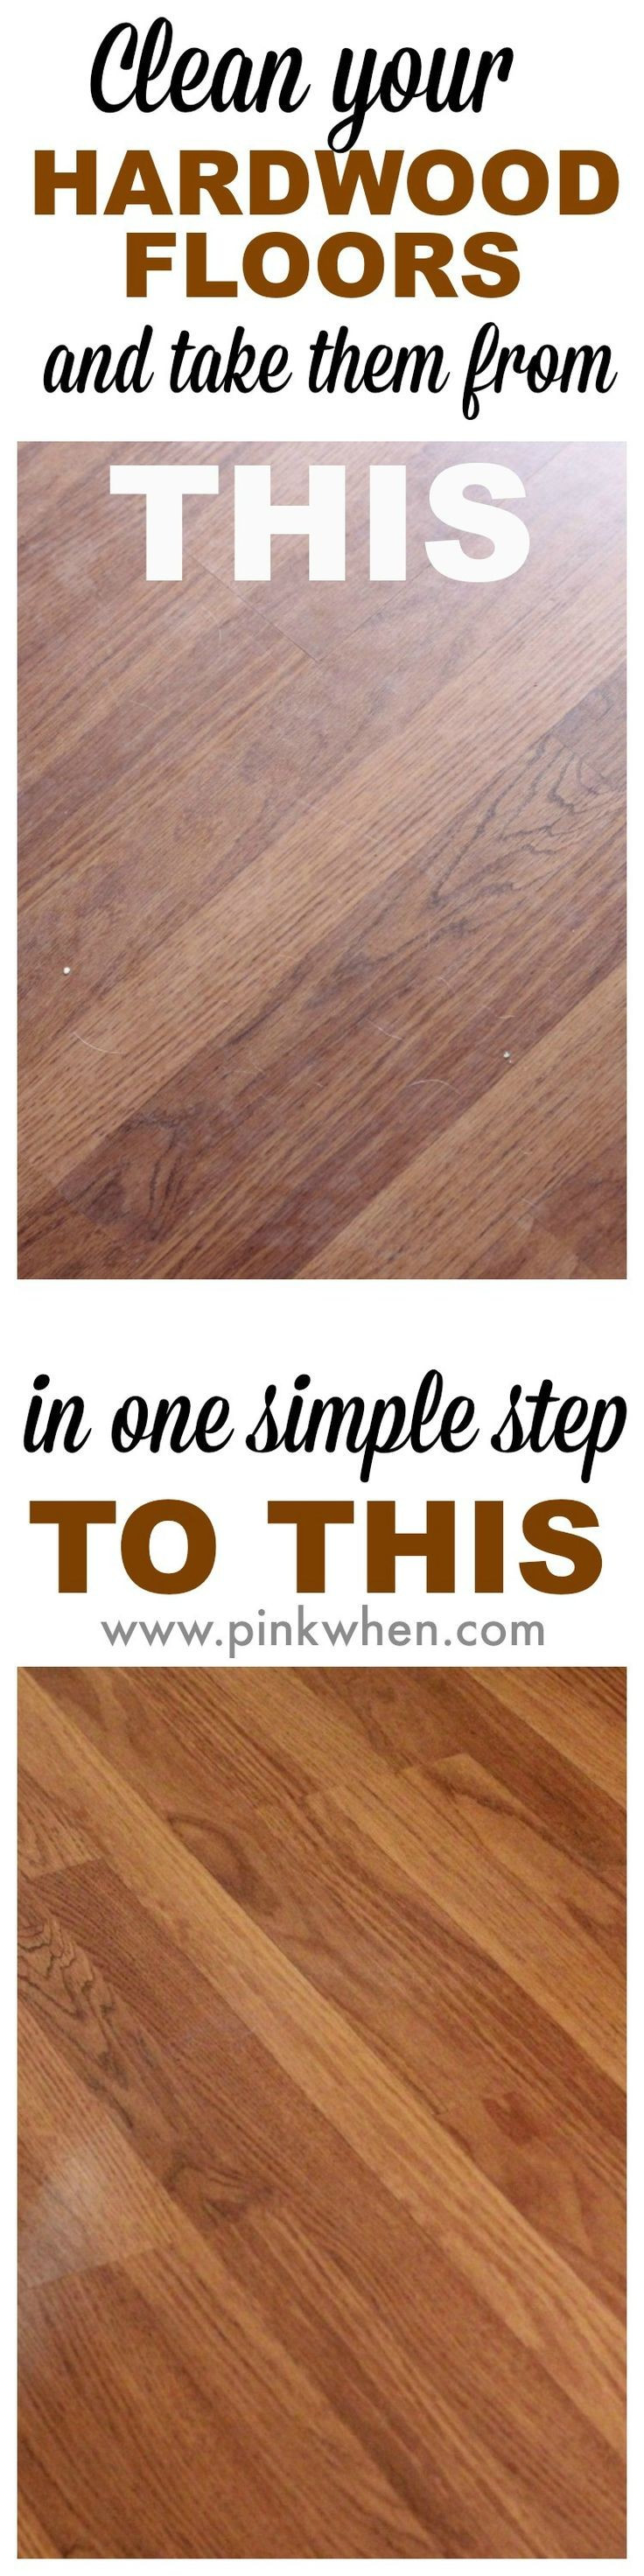 Discount Hardwood Flooring Denver Of 19 Awesome Steam Clean Hardwood Floors Images Dizpos Com Intended for 84 Best Hardwood Floor Care Tips Images On Pinterest